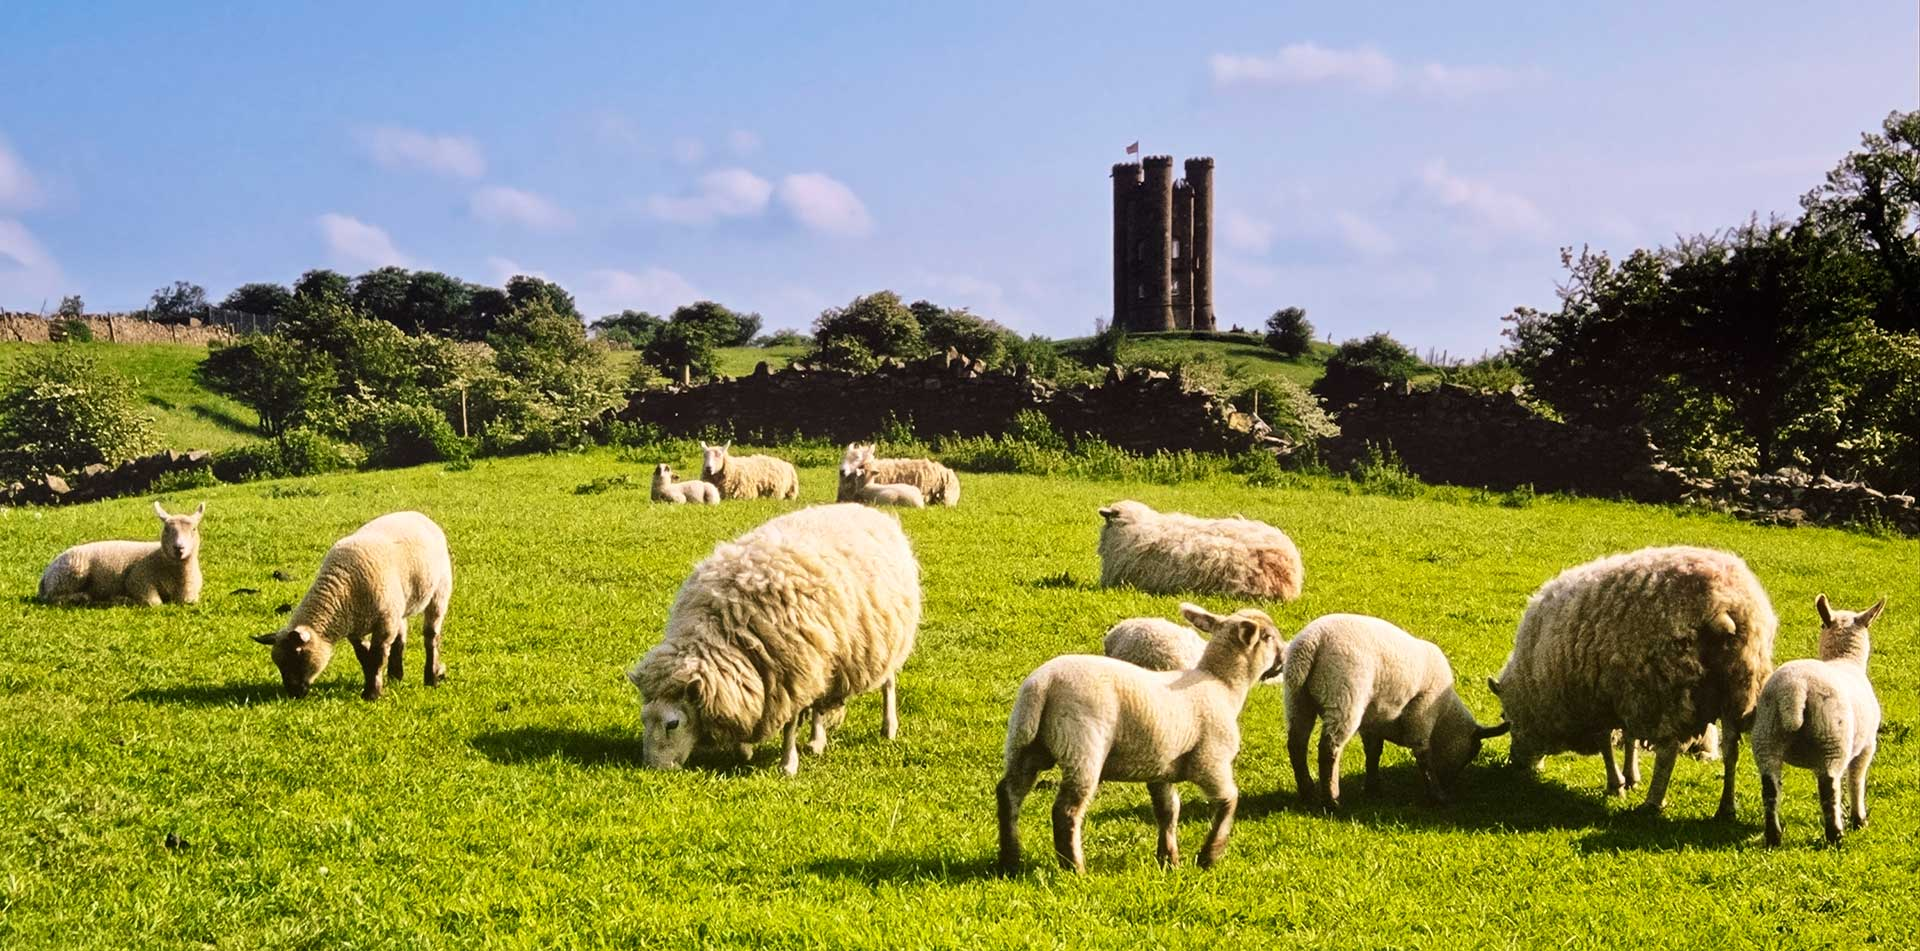 Europe United Kingdom England Cotswolds green meadows castle sheep rolling hills - luxury vacation destinations